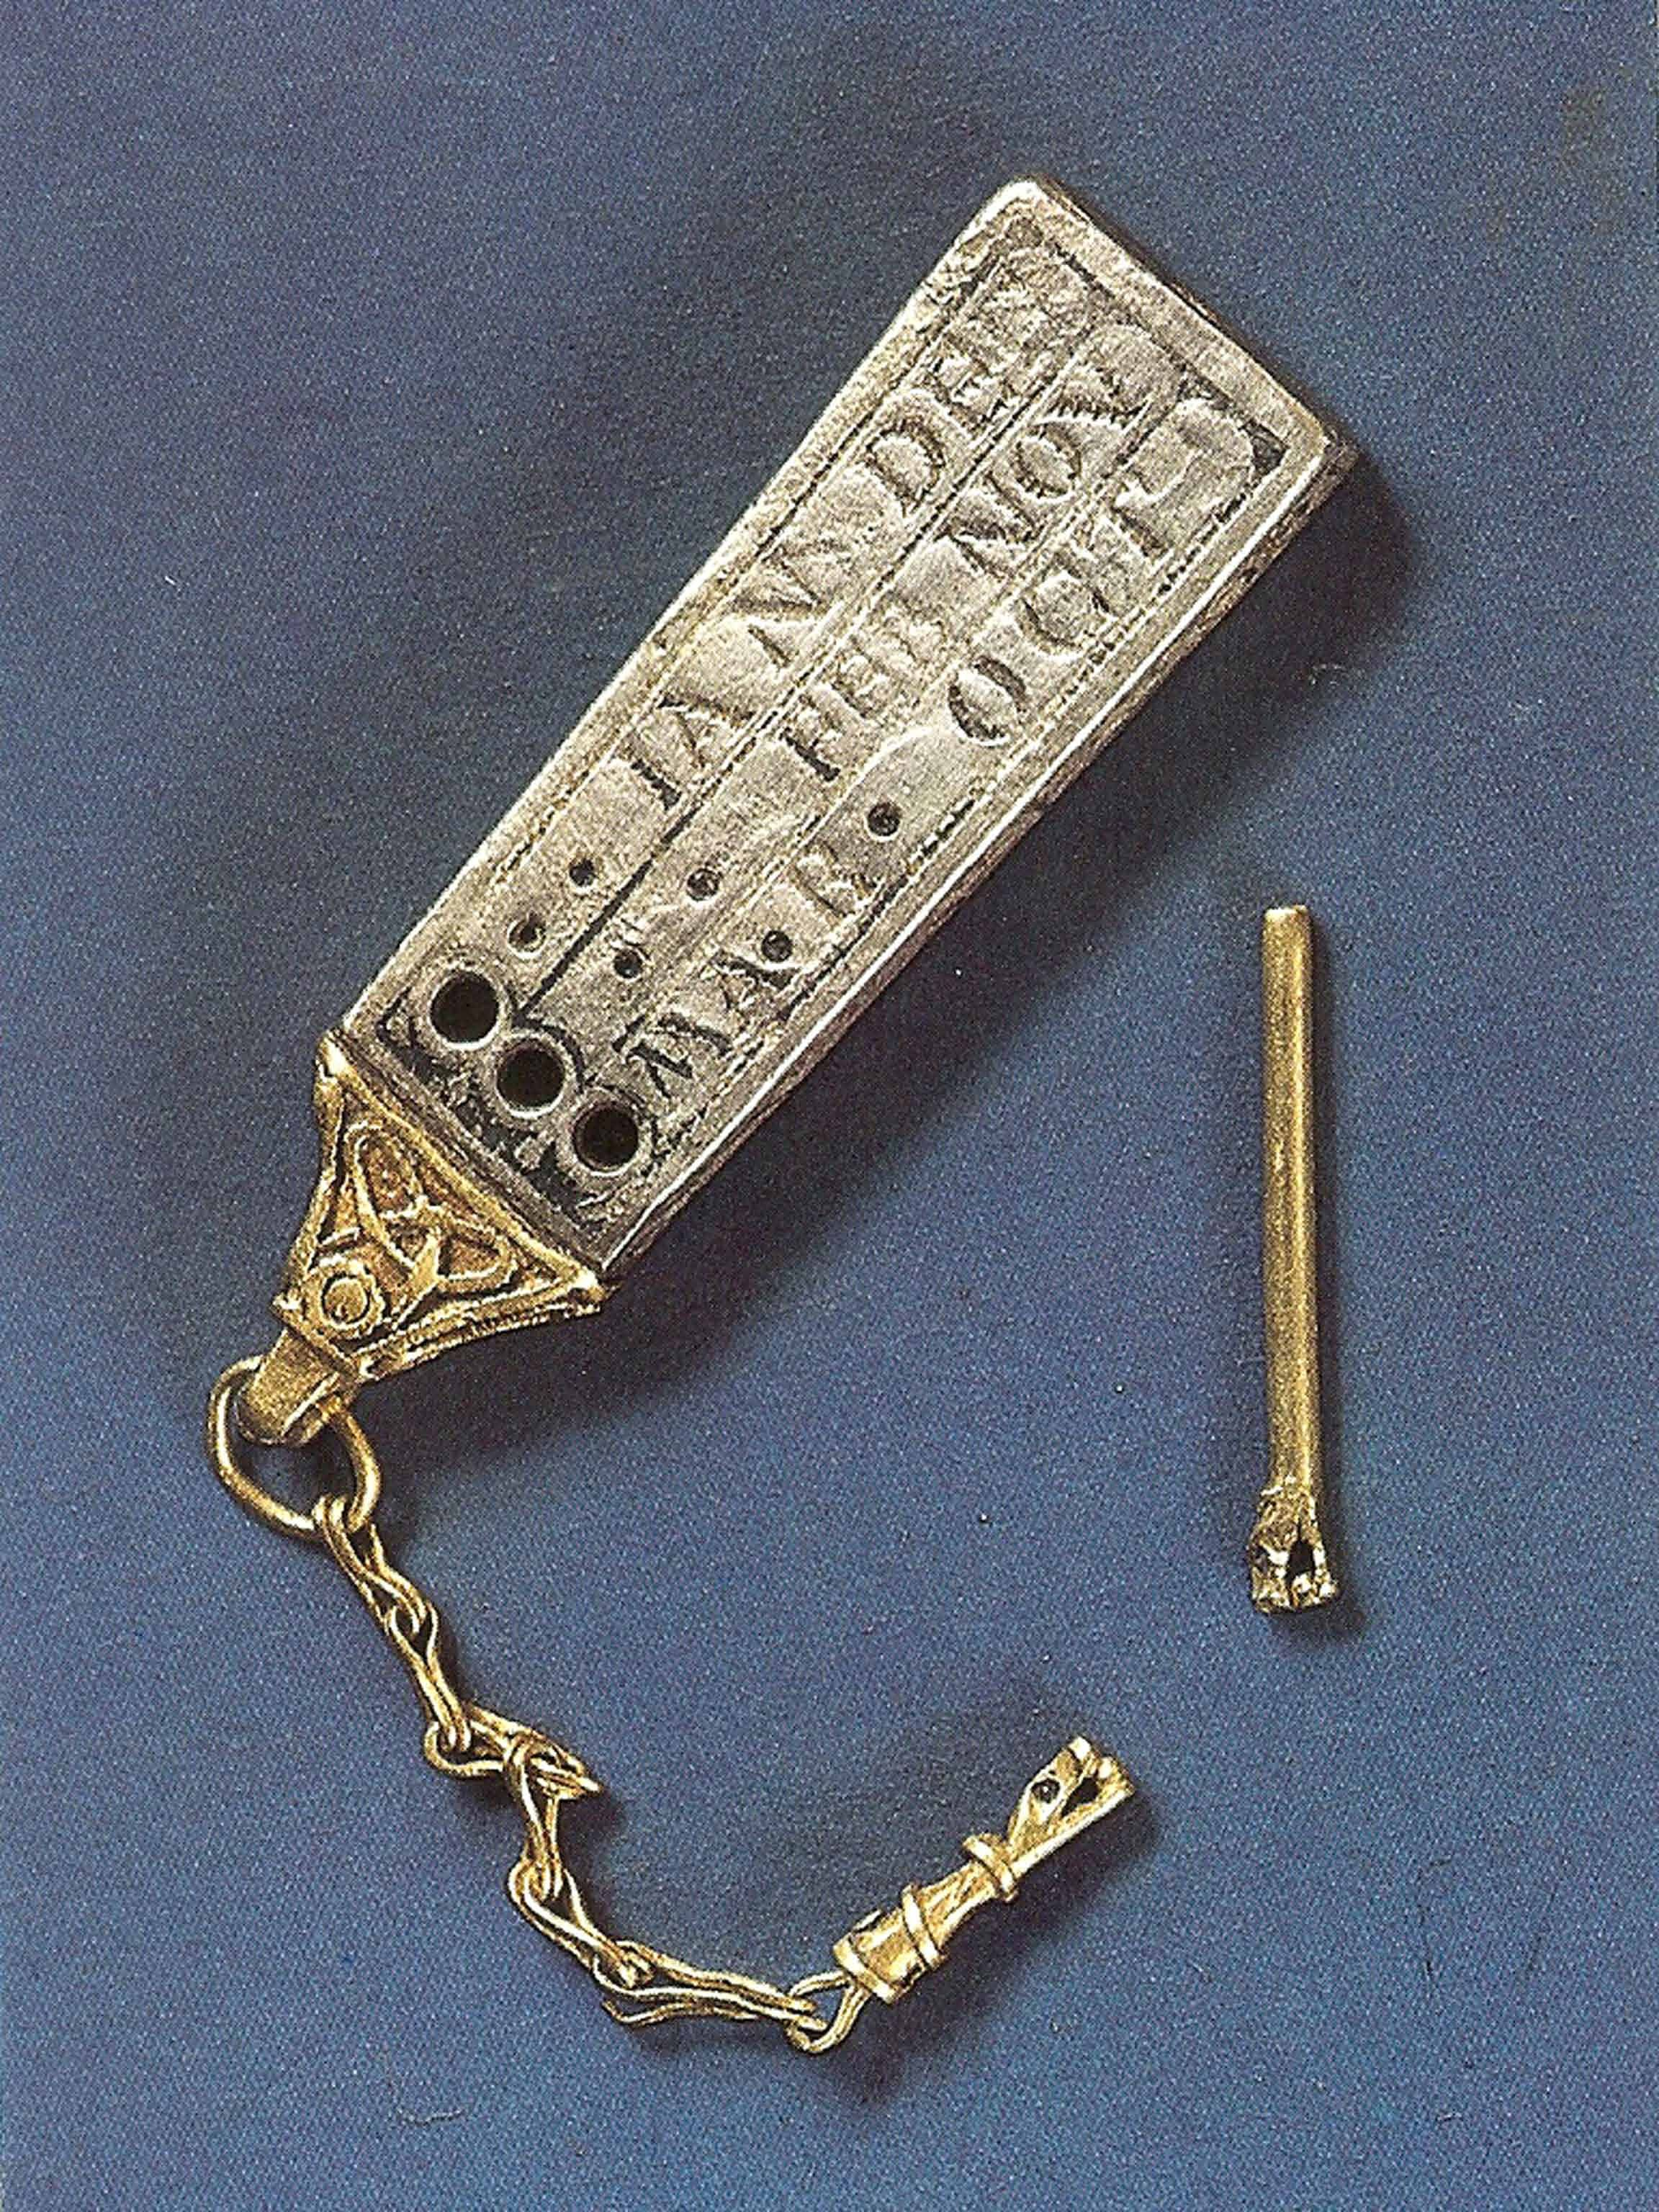 10th century portable sun dial which is kept in Canterbury Cathedral, Kent, England